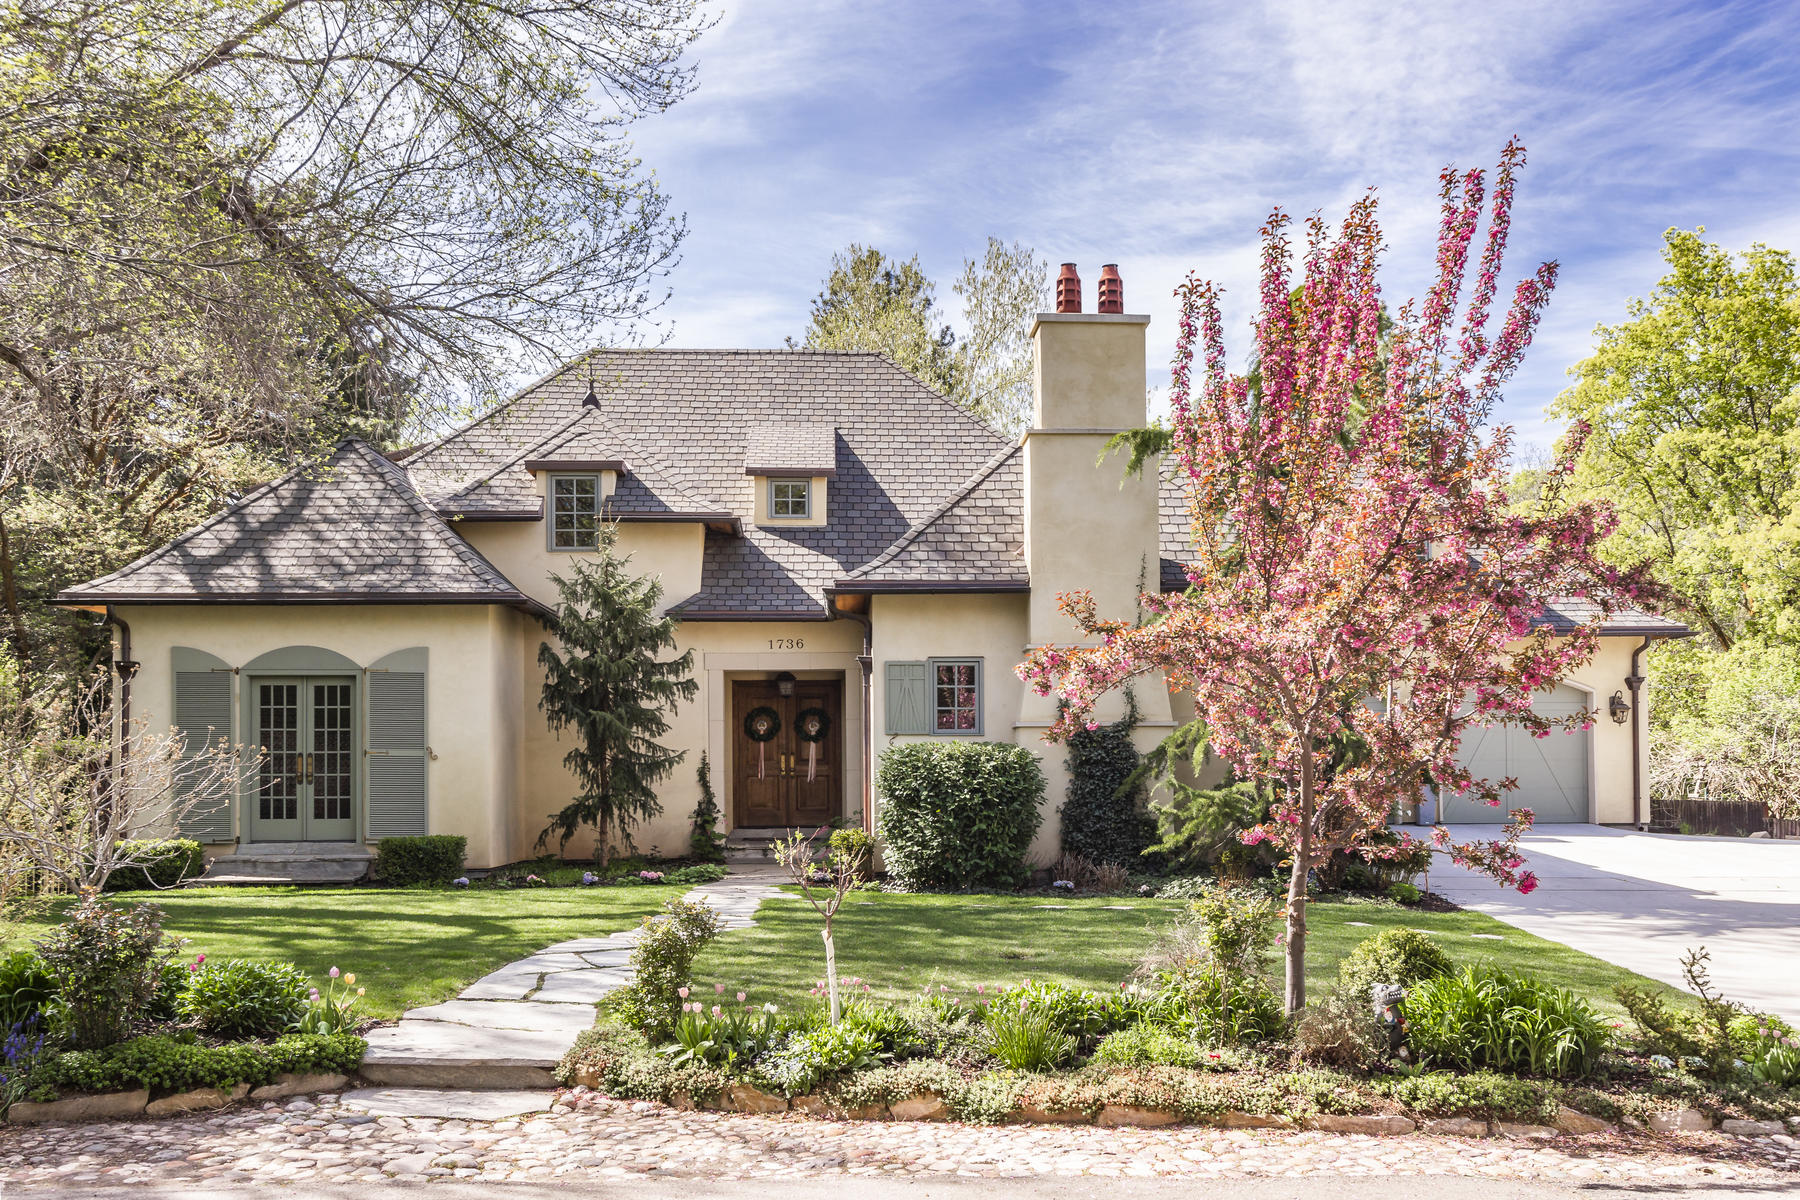 Single Family Homes for Sale at Traditional English Style Two-Story 1736 E Millcreek Way Salt Lake City, Utah 84106 United States